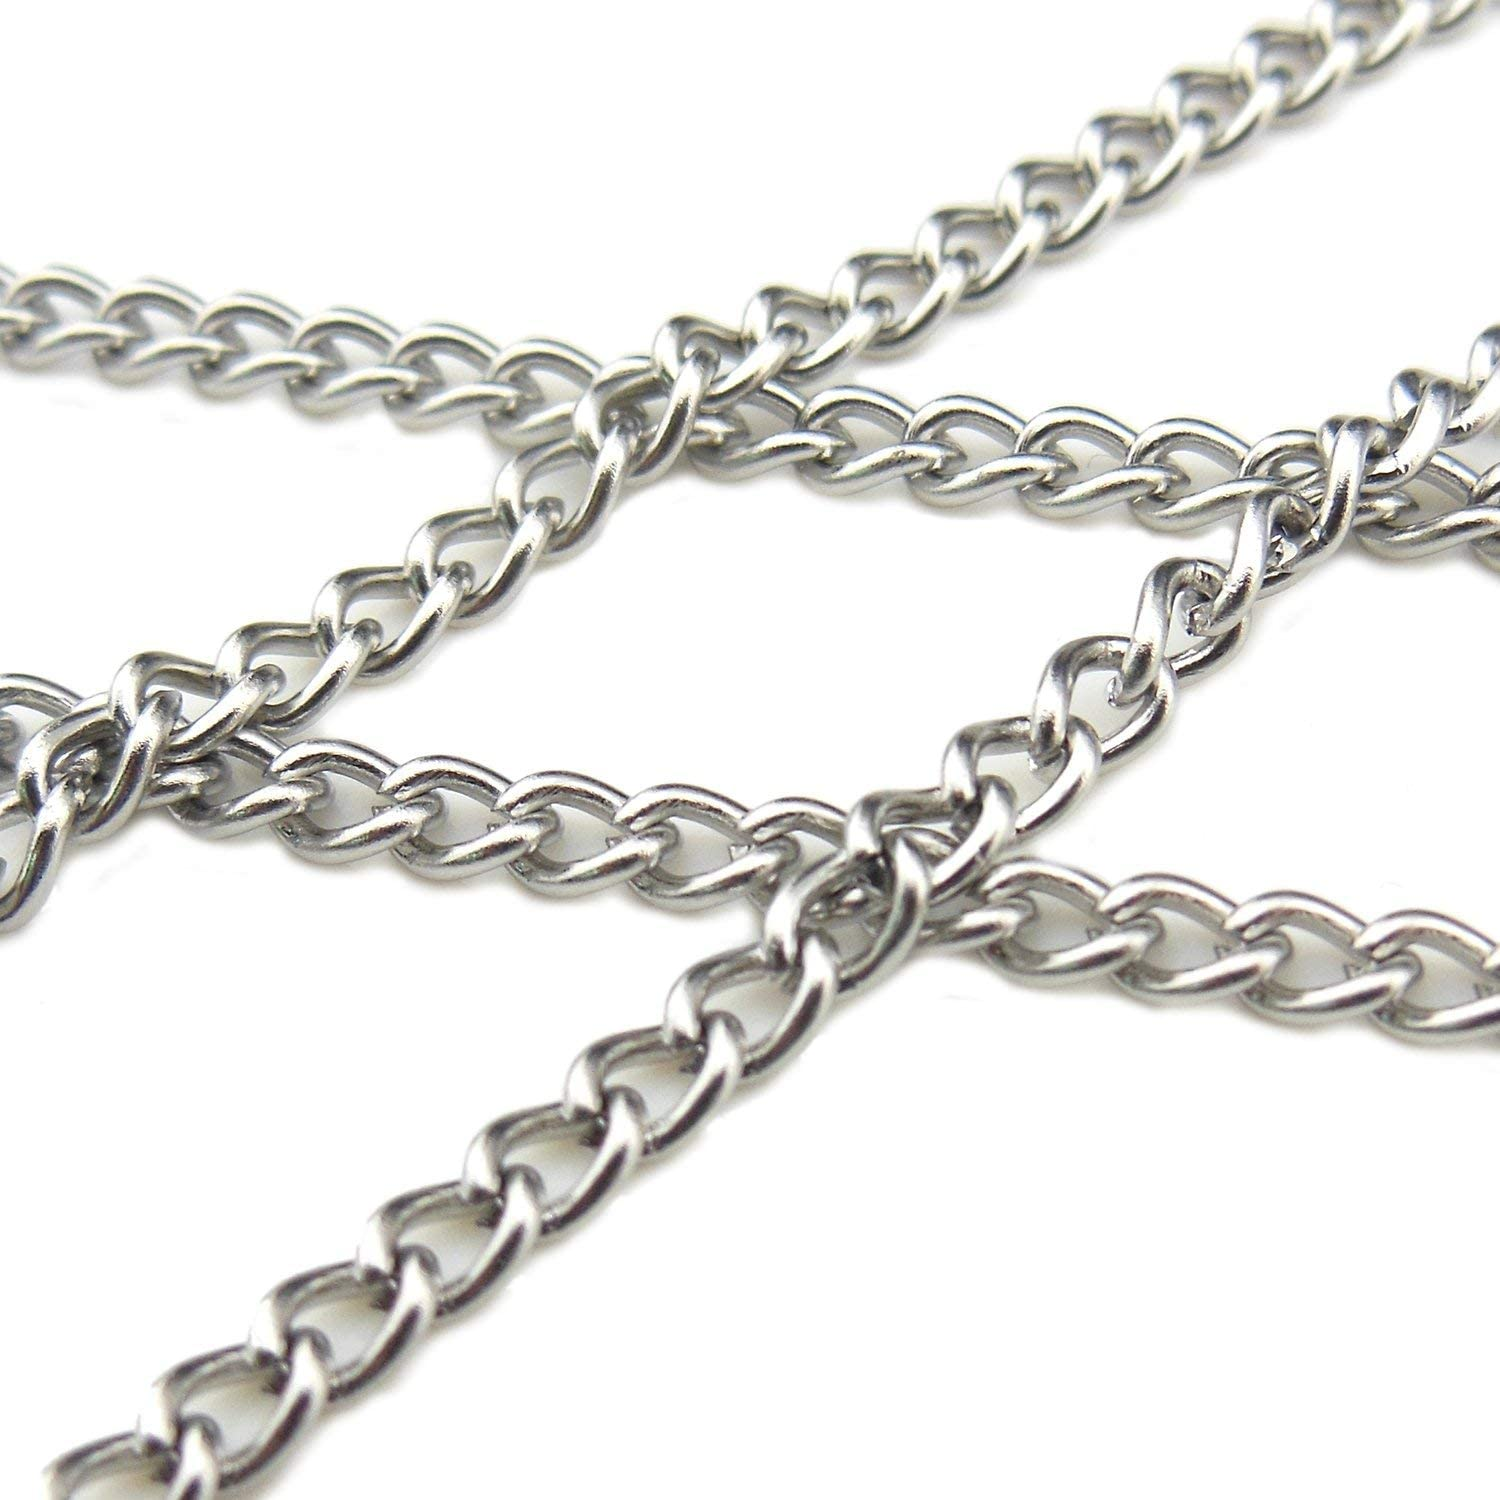 SC-1006-C 16.4ft 6.5mm Width Stainless Steel Chains Findings Fit for Jewelry Making /&DIY